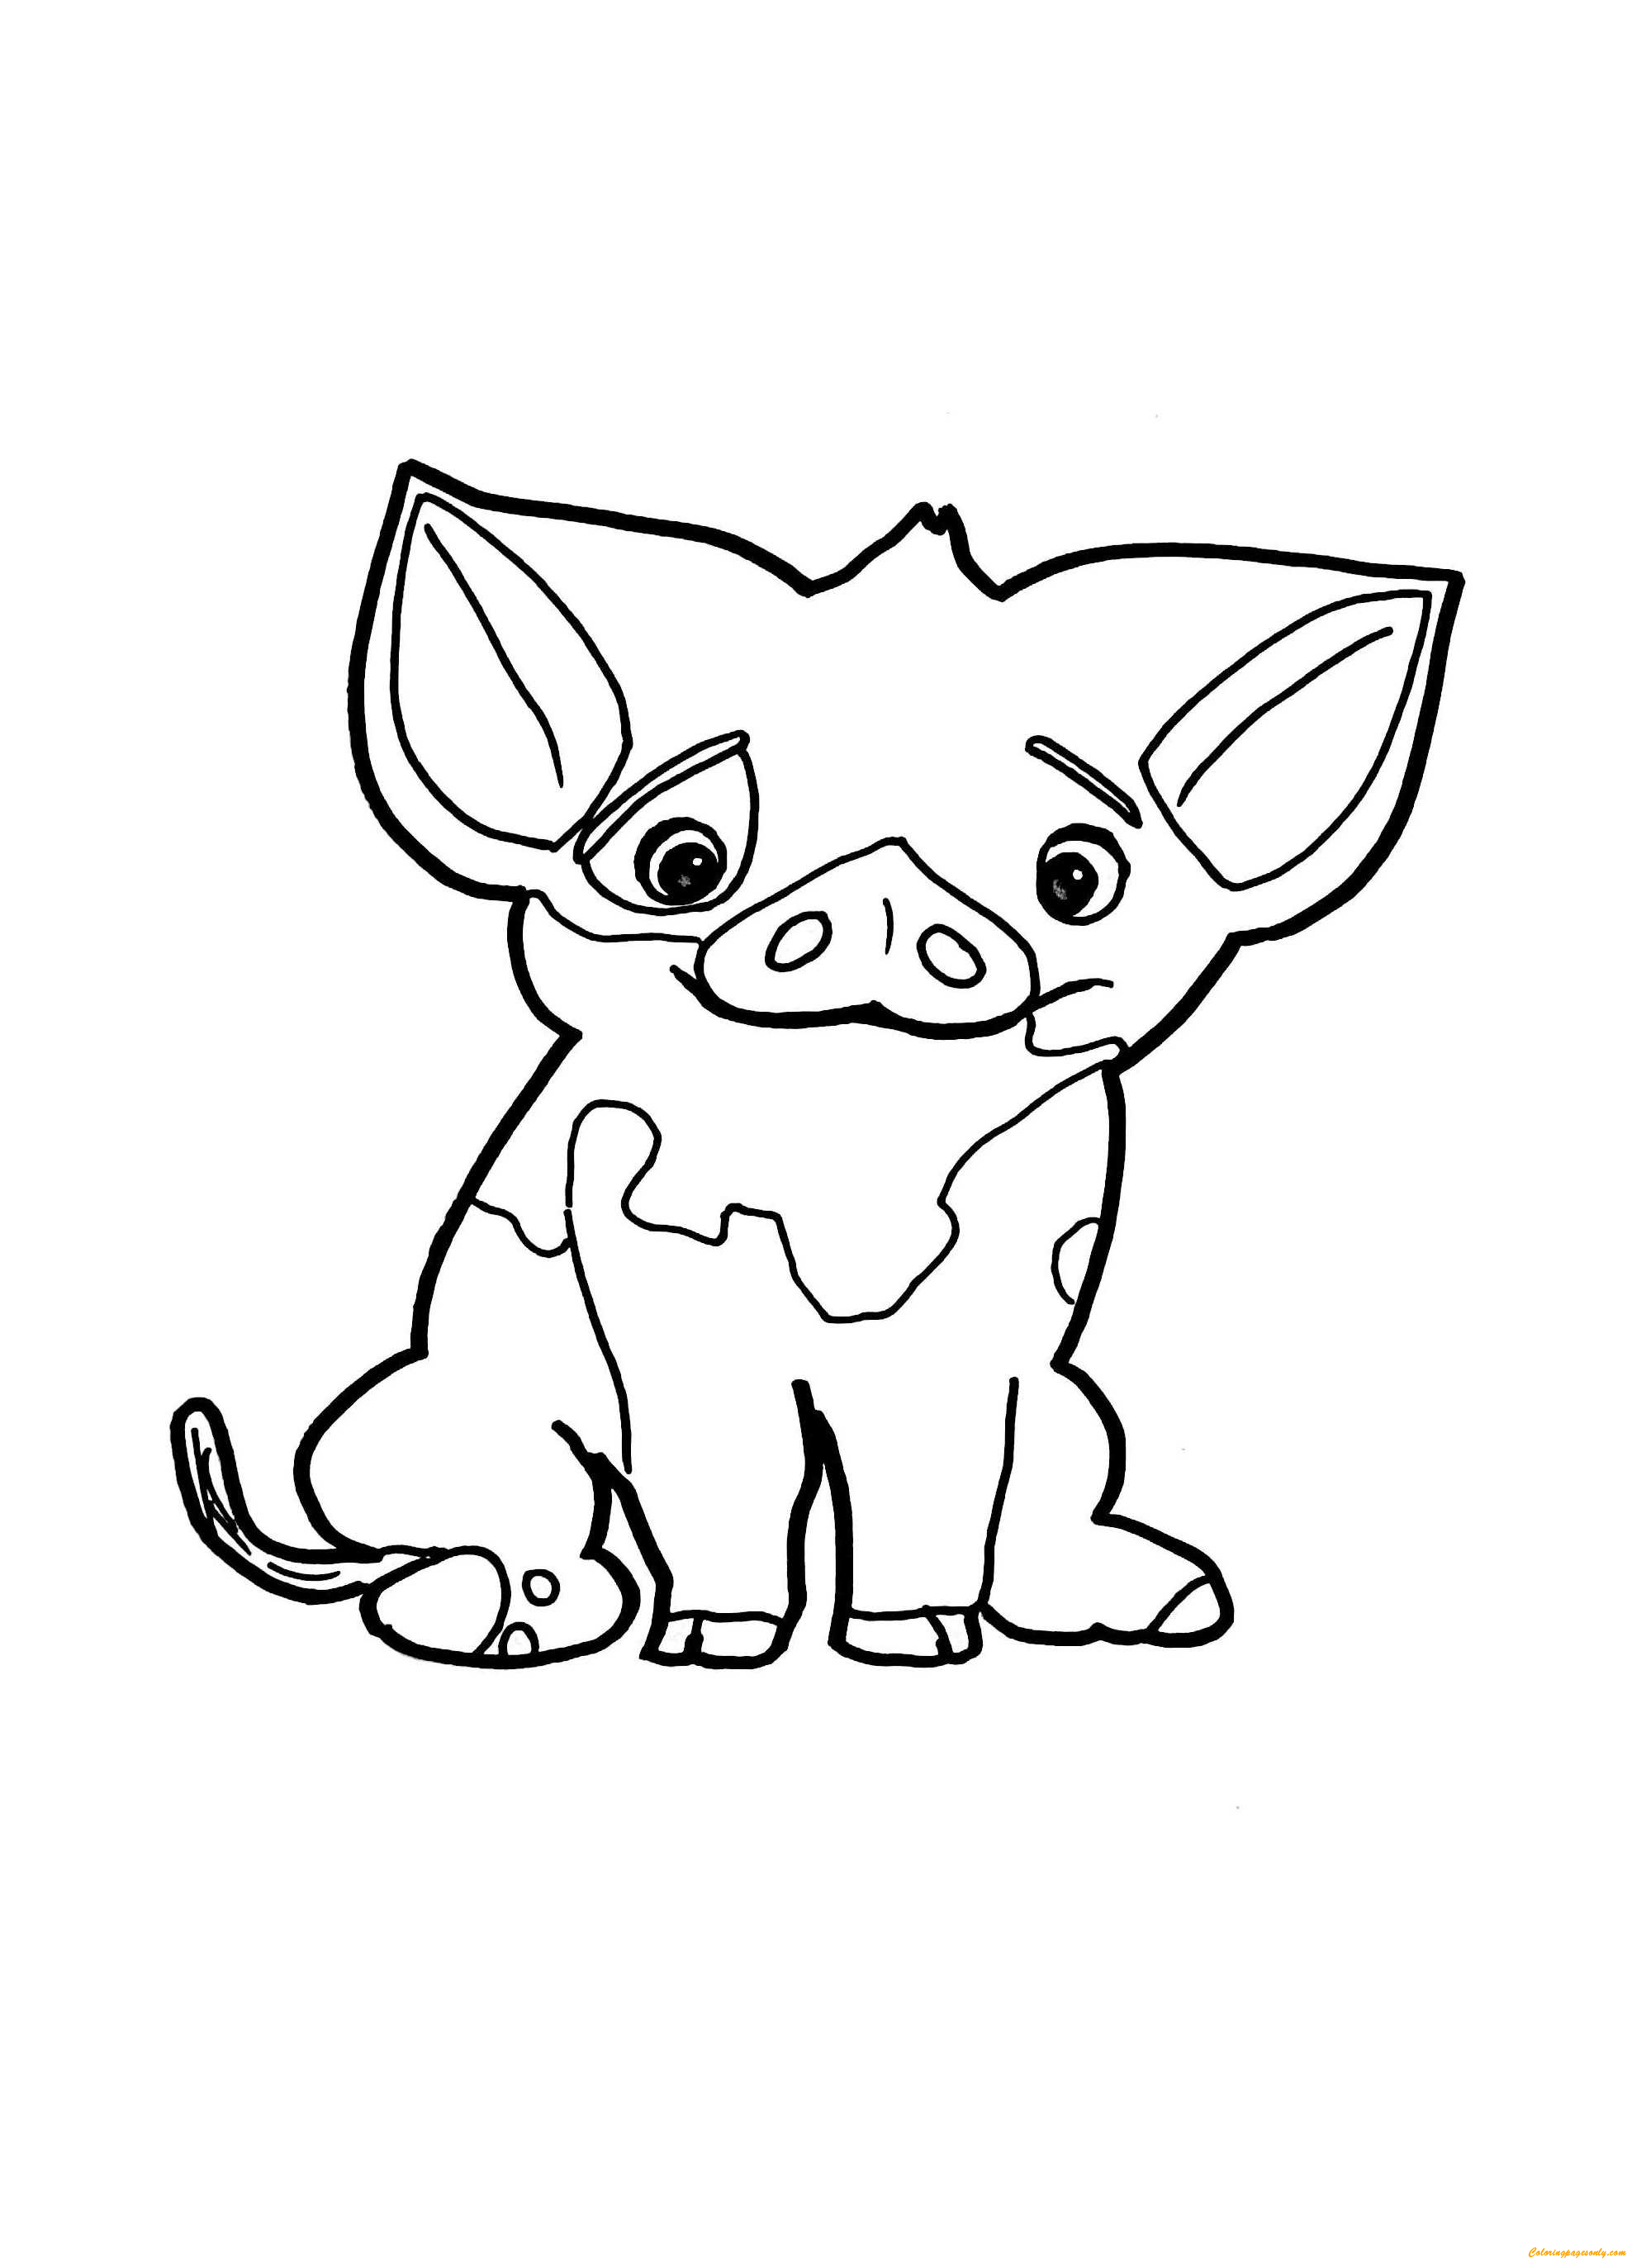 pig pictures to colour hog clipart coloring hog coloring transparent free for pig to pictures colour